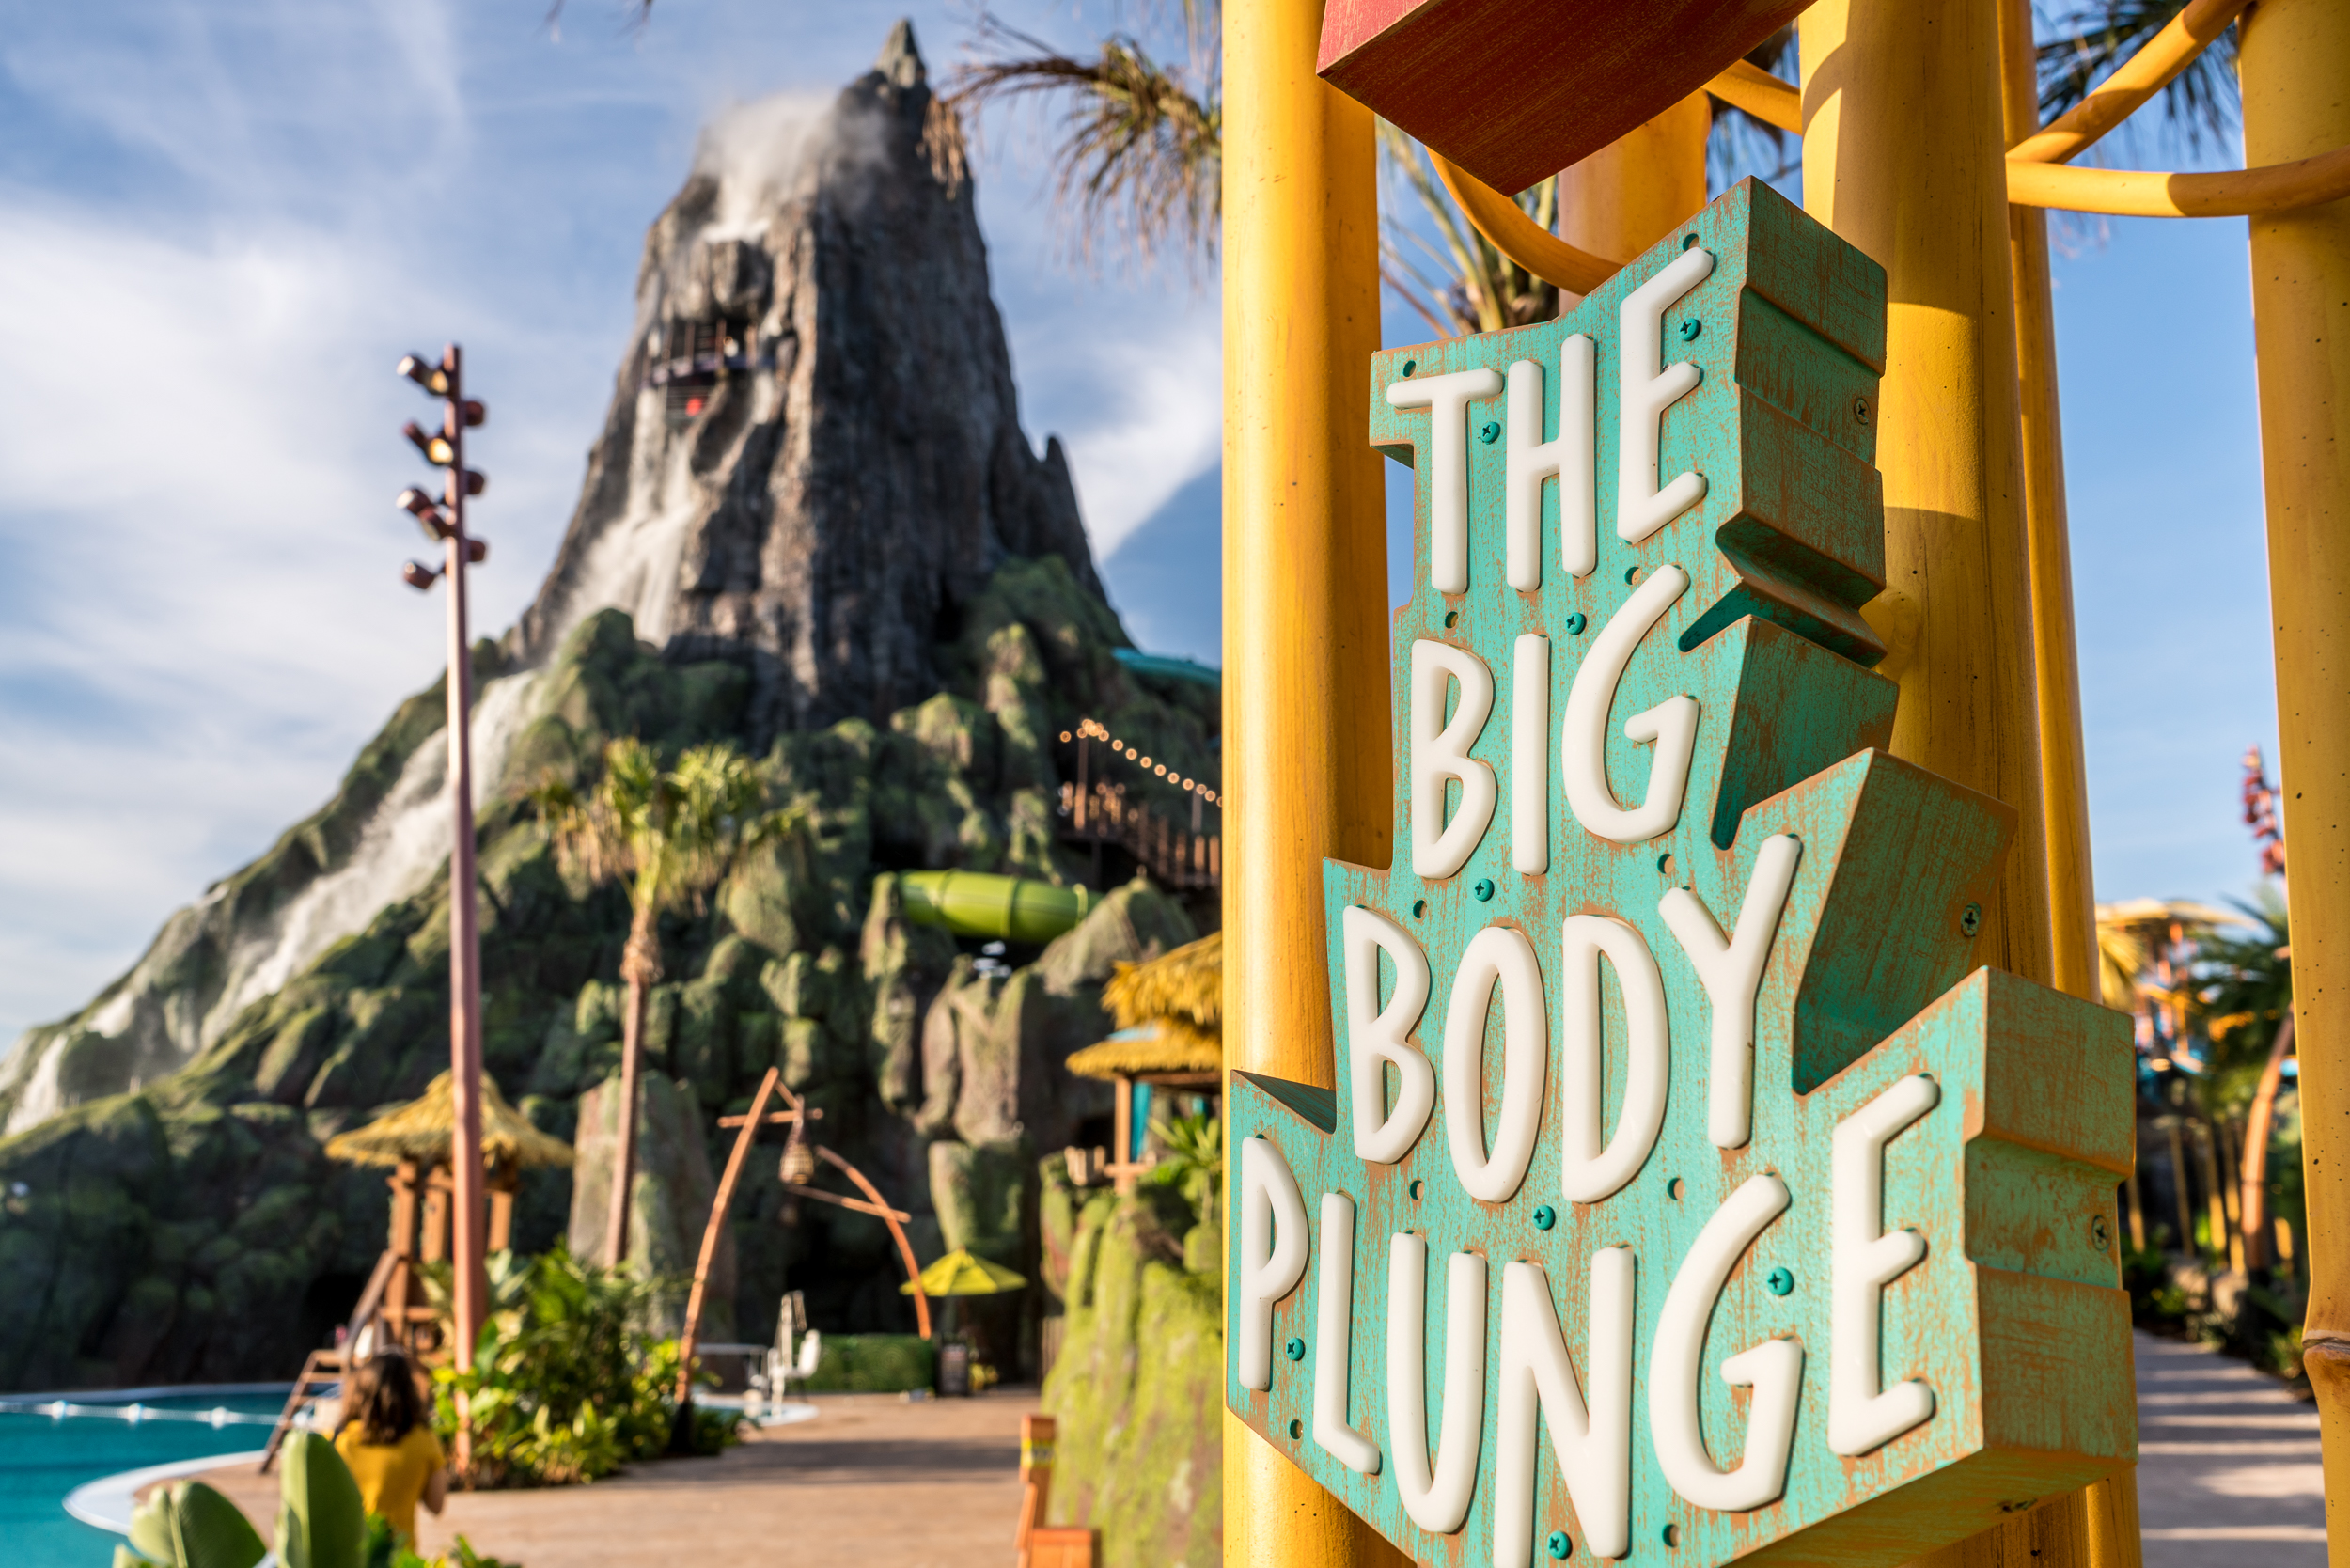 """The entrance sign for Ko'okiri Body Plunge reads """"The Big Body Plunge."""""""